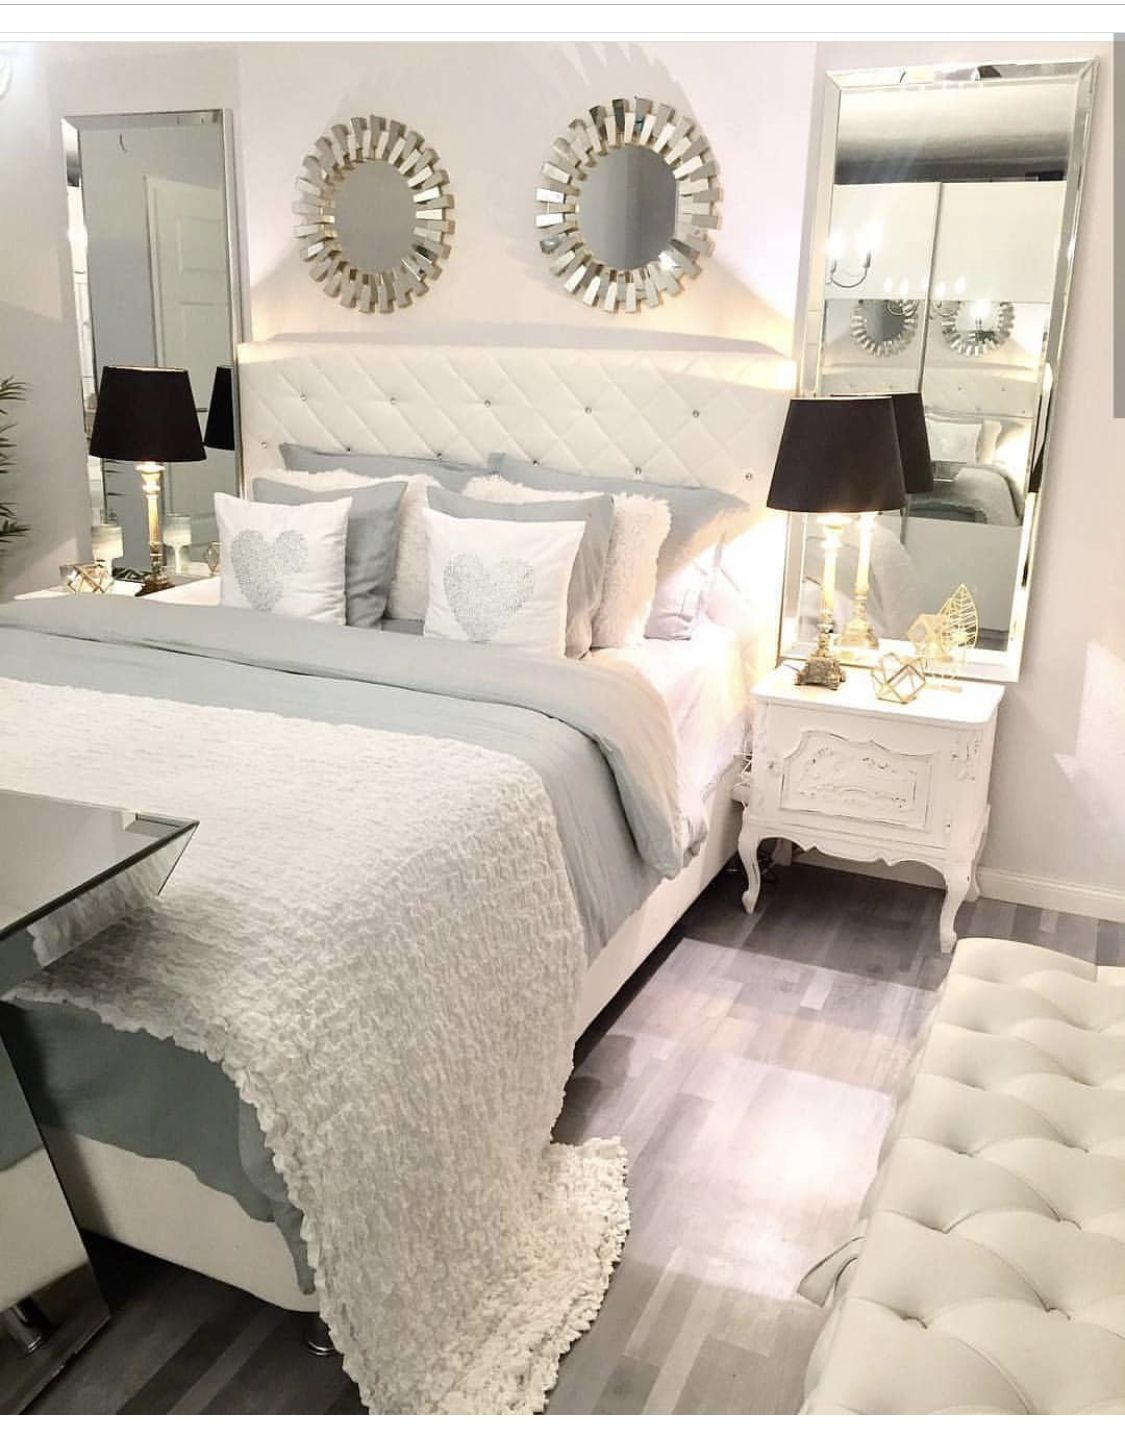 Pin By Tiana Cumberbatch On House Home Decor Bedroom